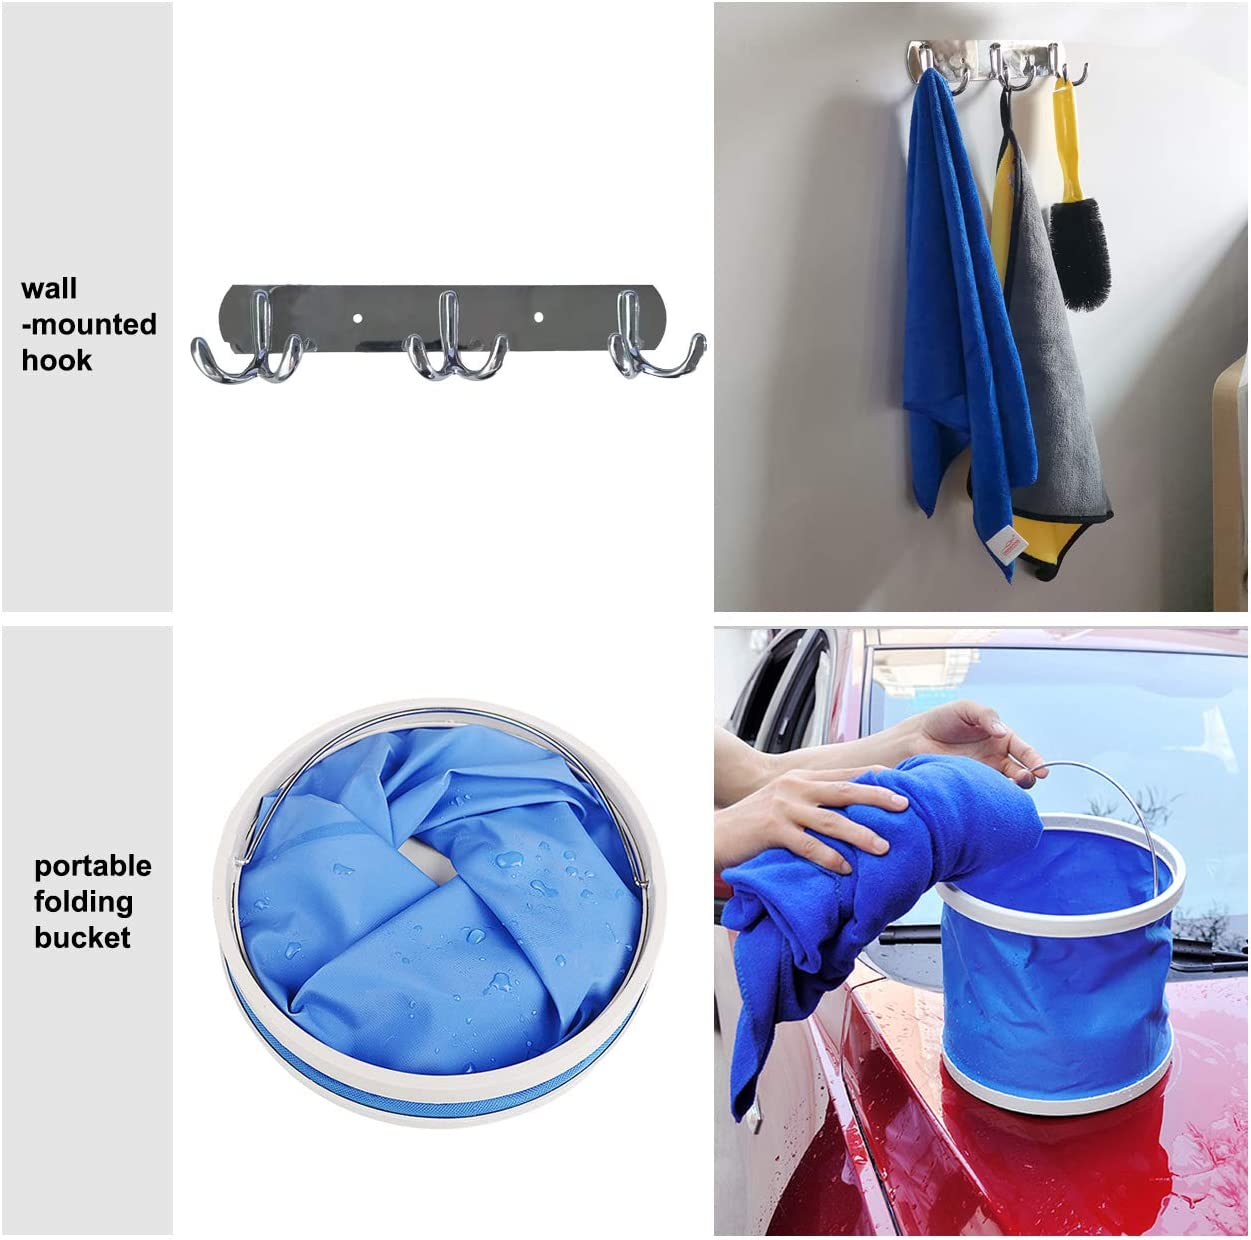 E-sds Car Cleaning Tools Kit Window Water Scraper 12pcs Car Wash Kit for Interior and Exterior Cleaning Water Bucket/… Car Washing Towel Microfiber Wash Sponge Wheel and Tire Brush